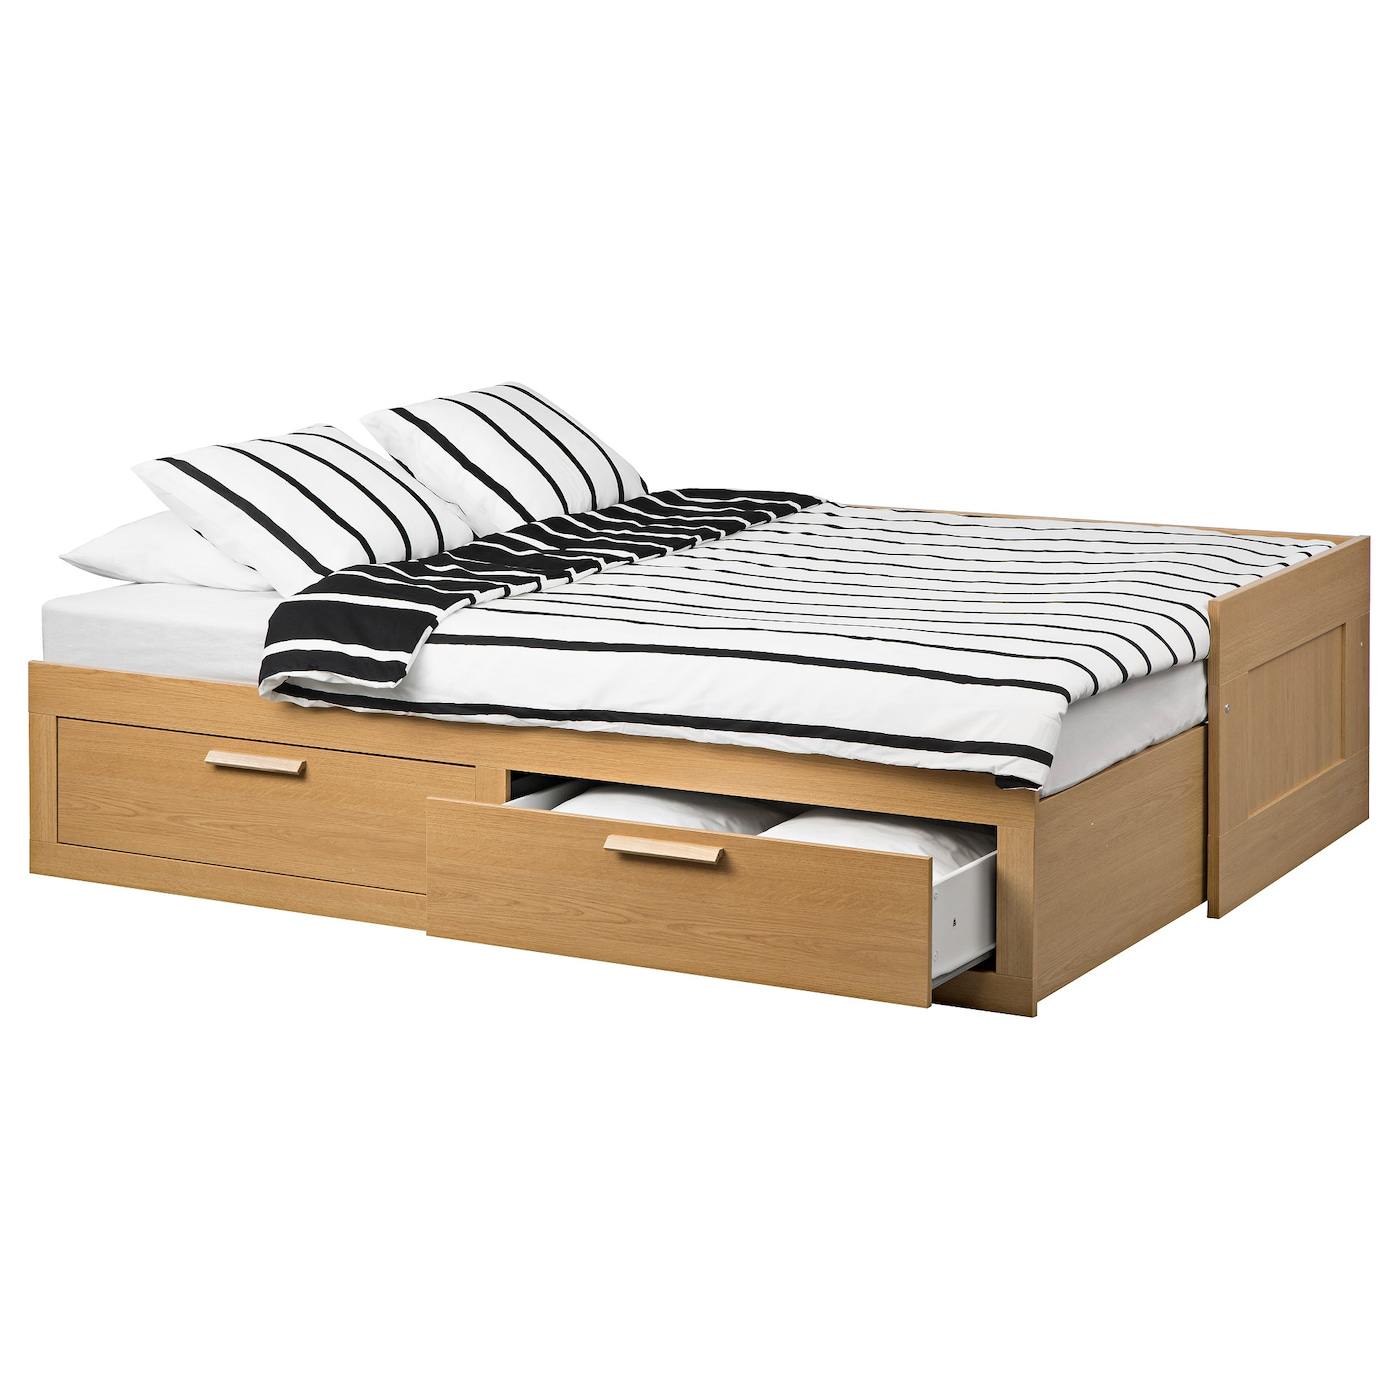 brimnes day bed w 2 drawers 2 mattresses oak effect moshult firm 80x200 cm ikea. Black Bedroom Furniture Sets. Home Design Ideas